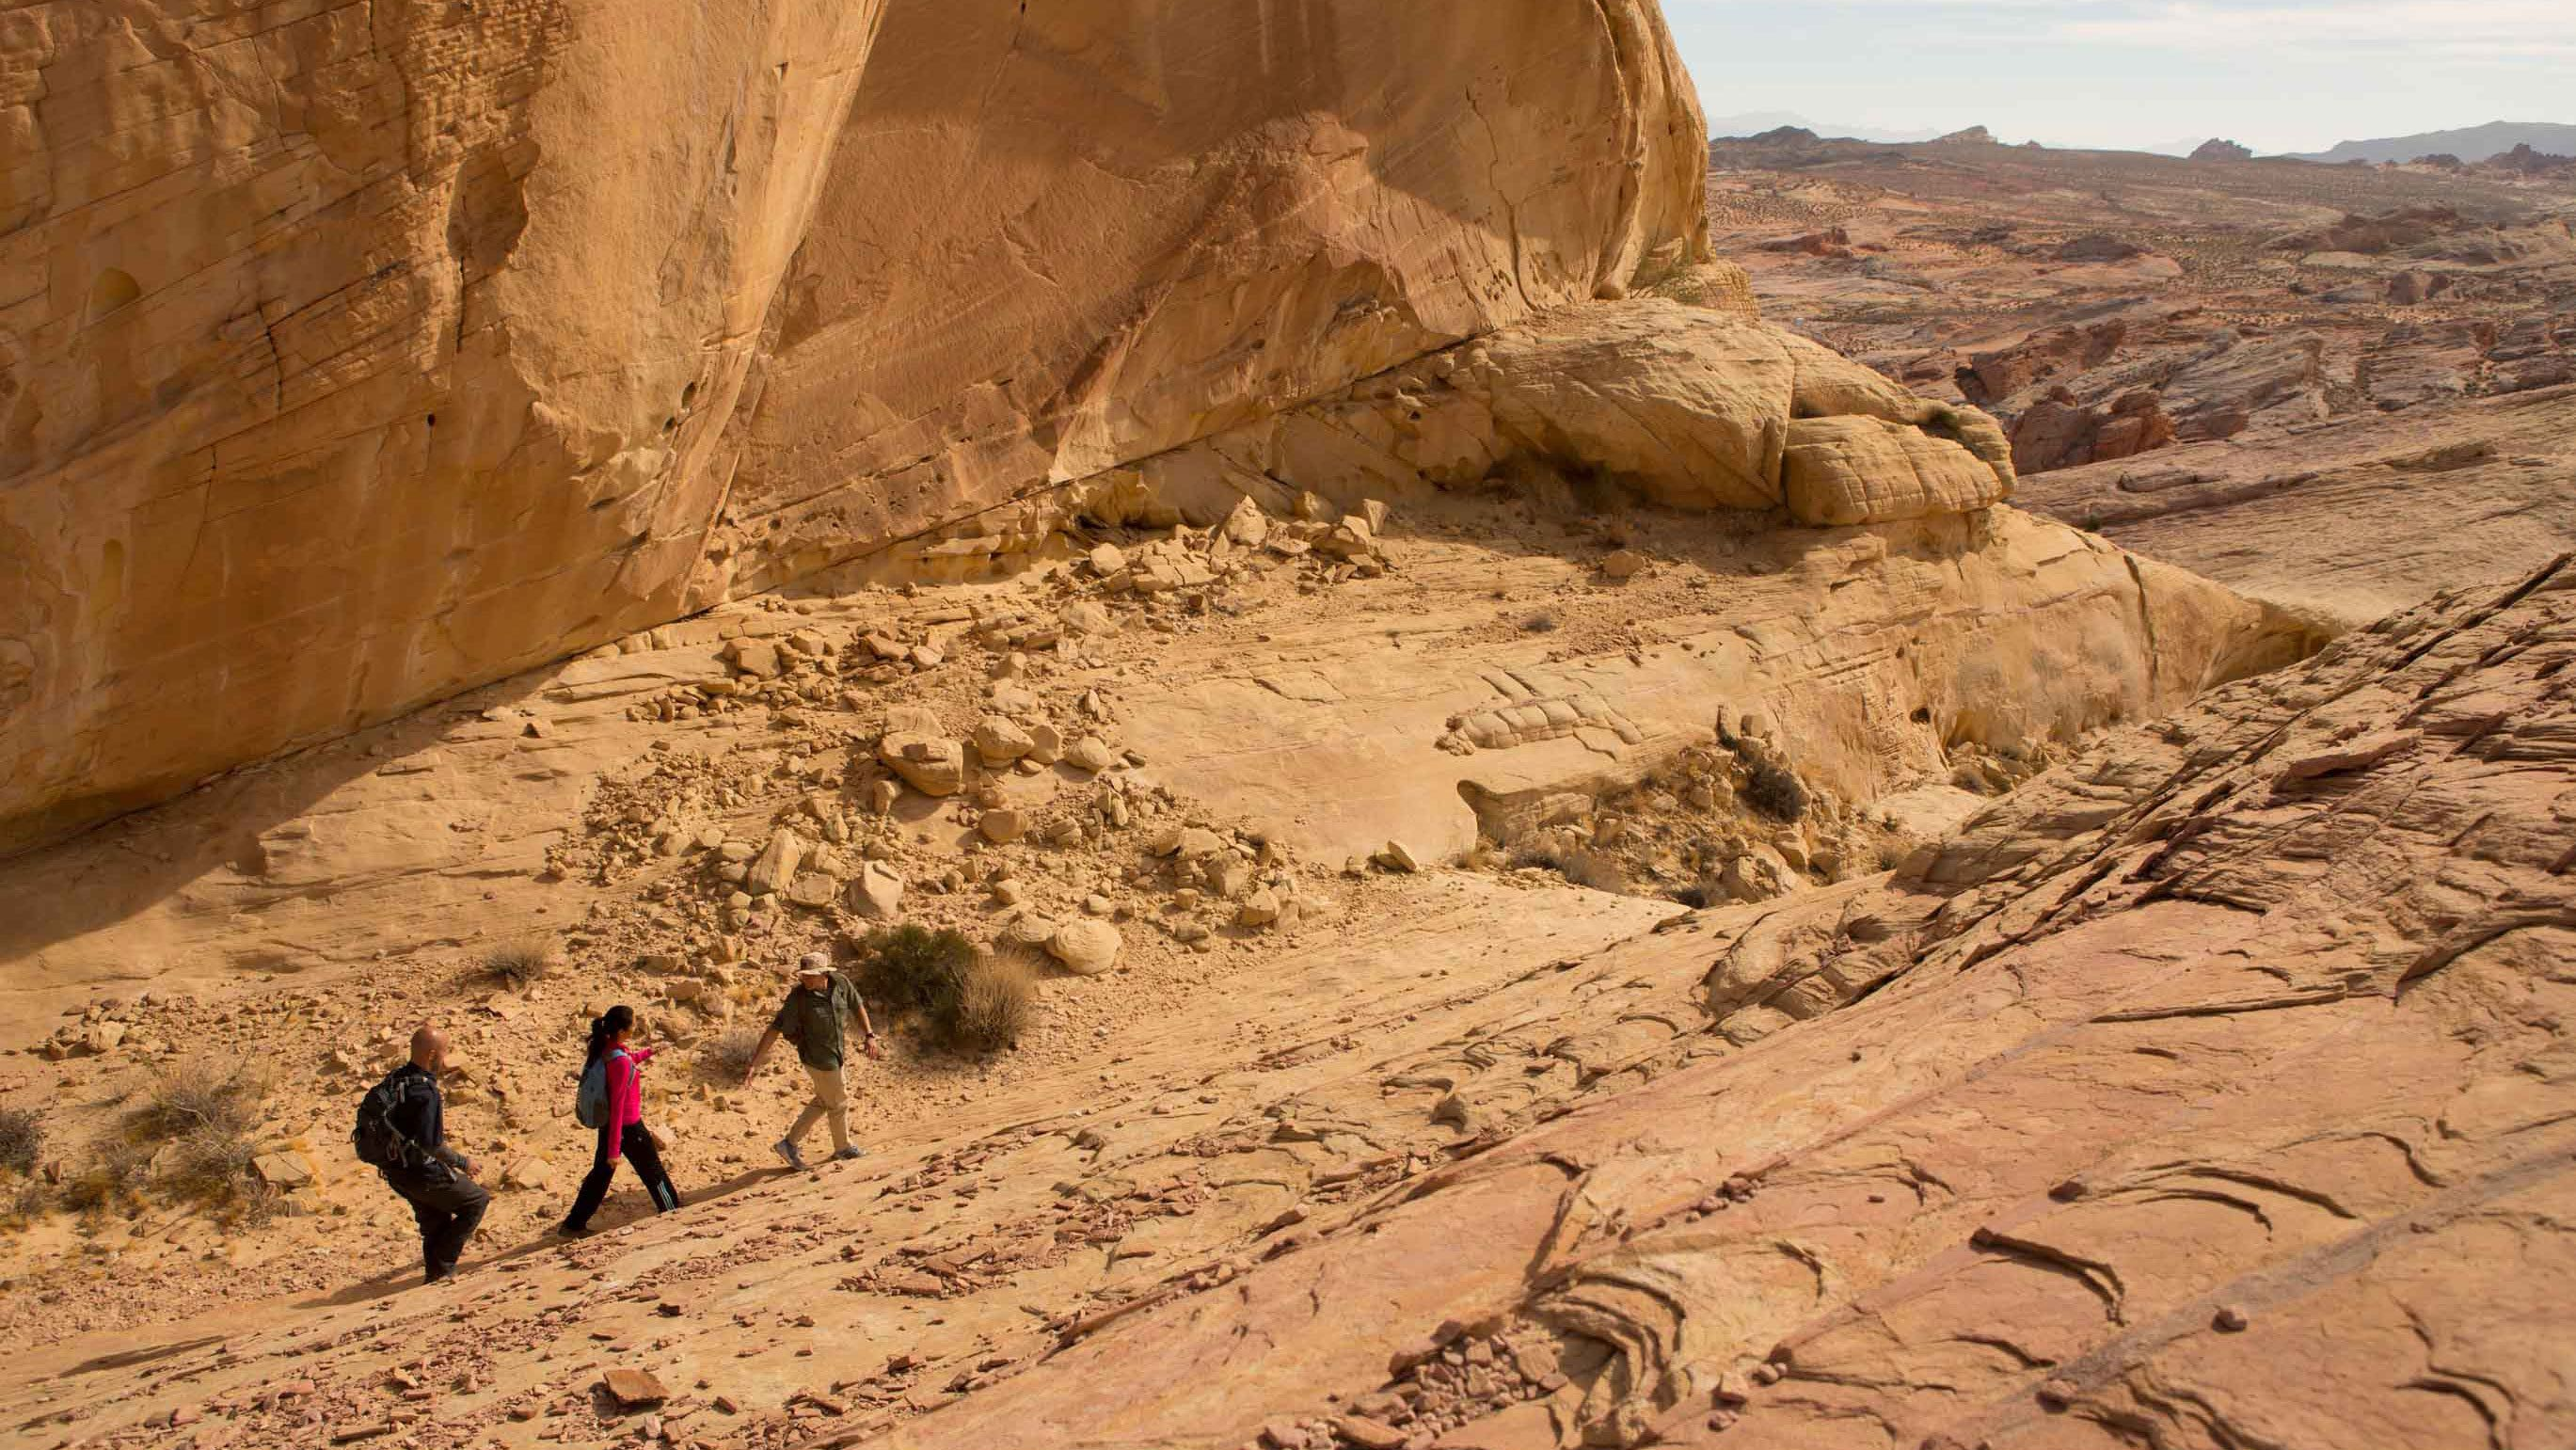 Hike through the Valley of Fire with a professional tour guide